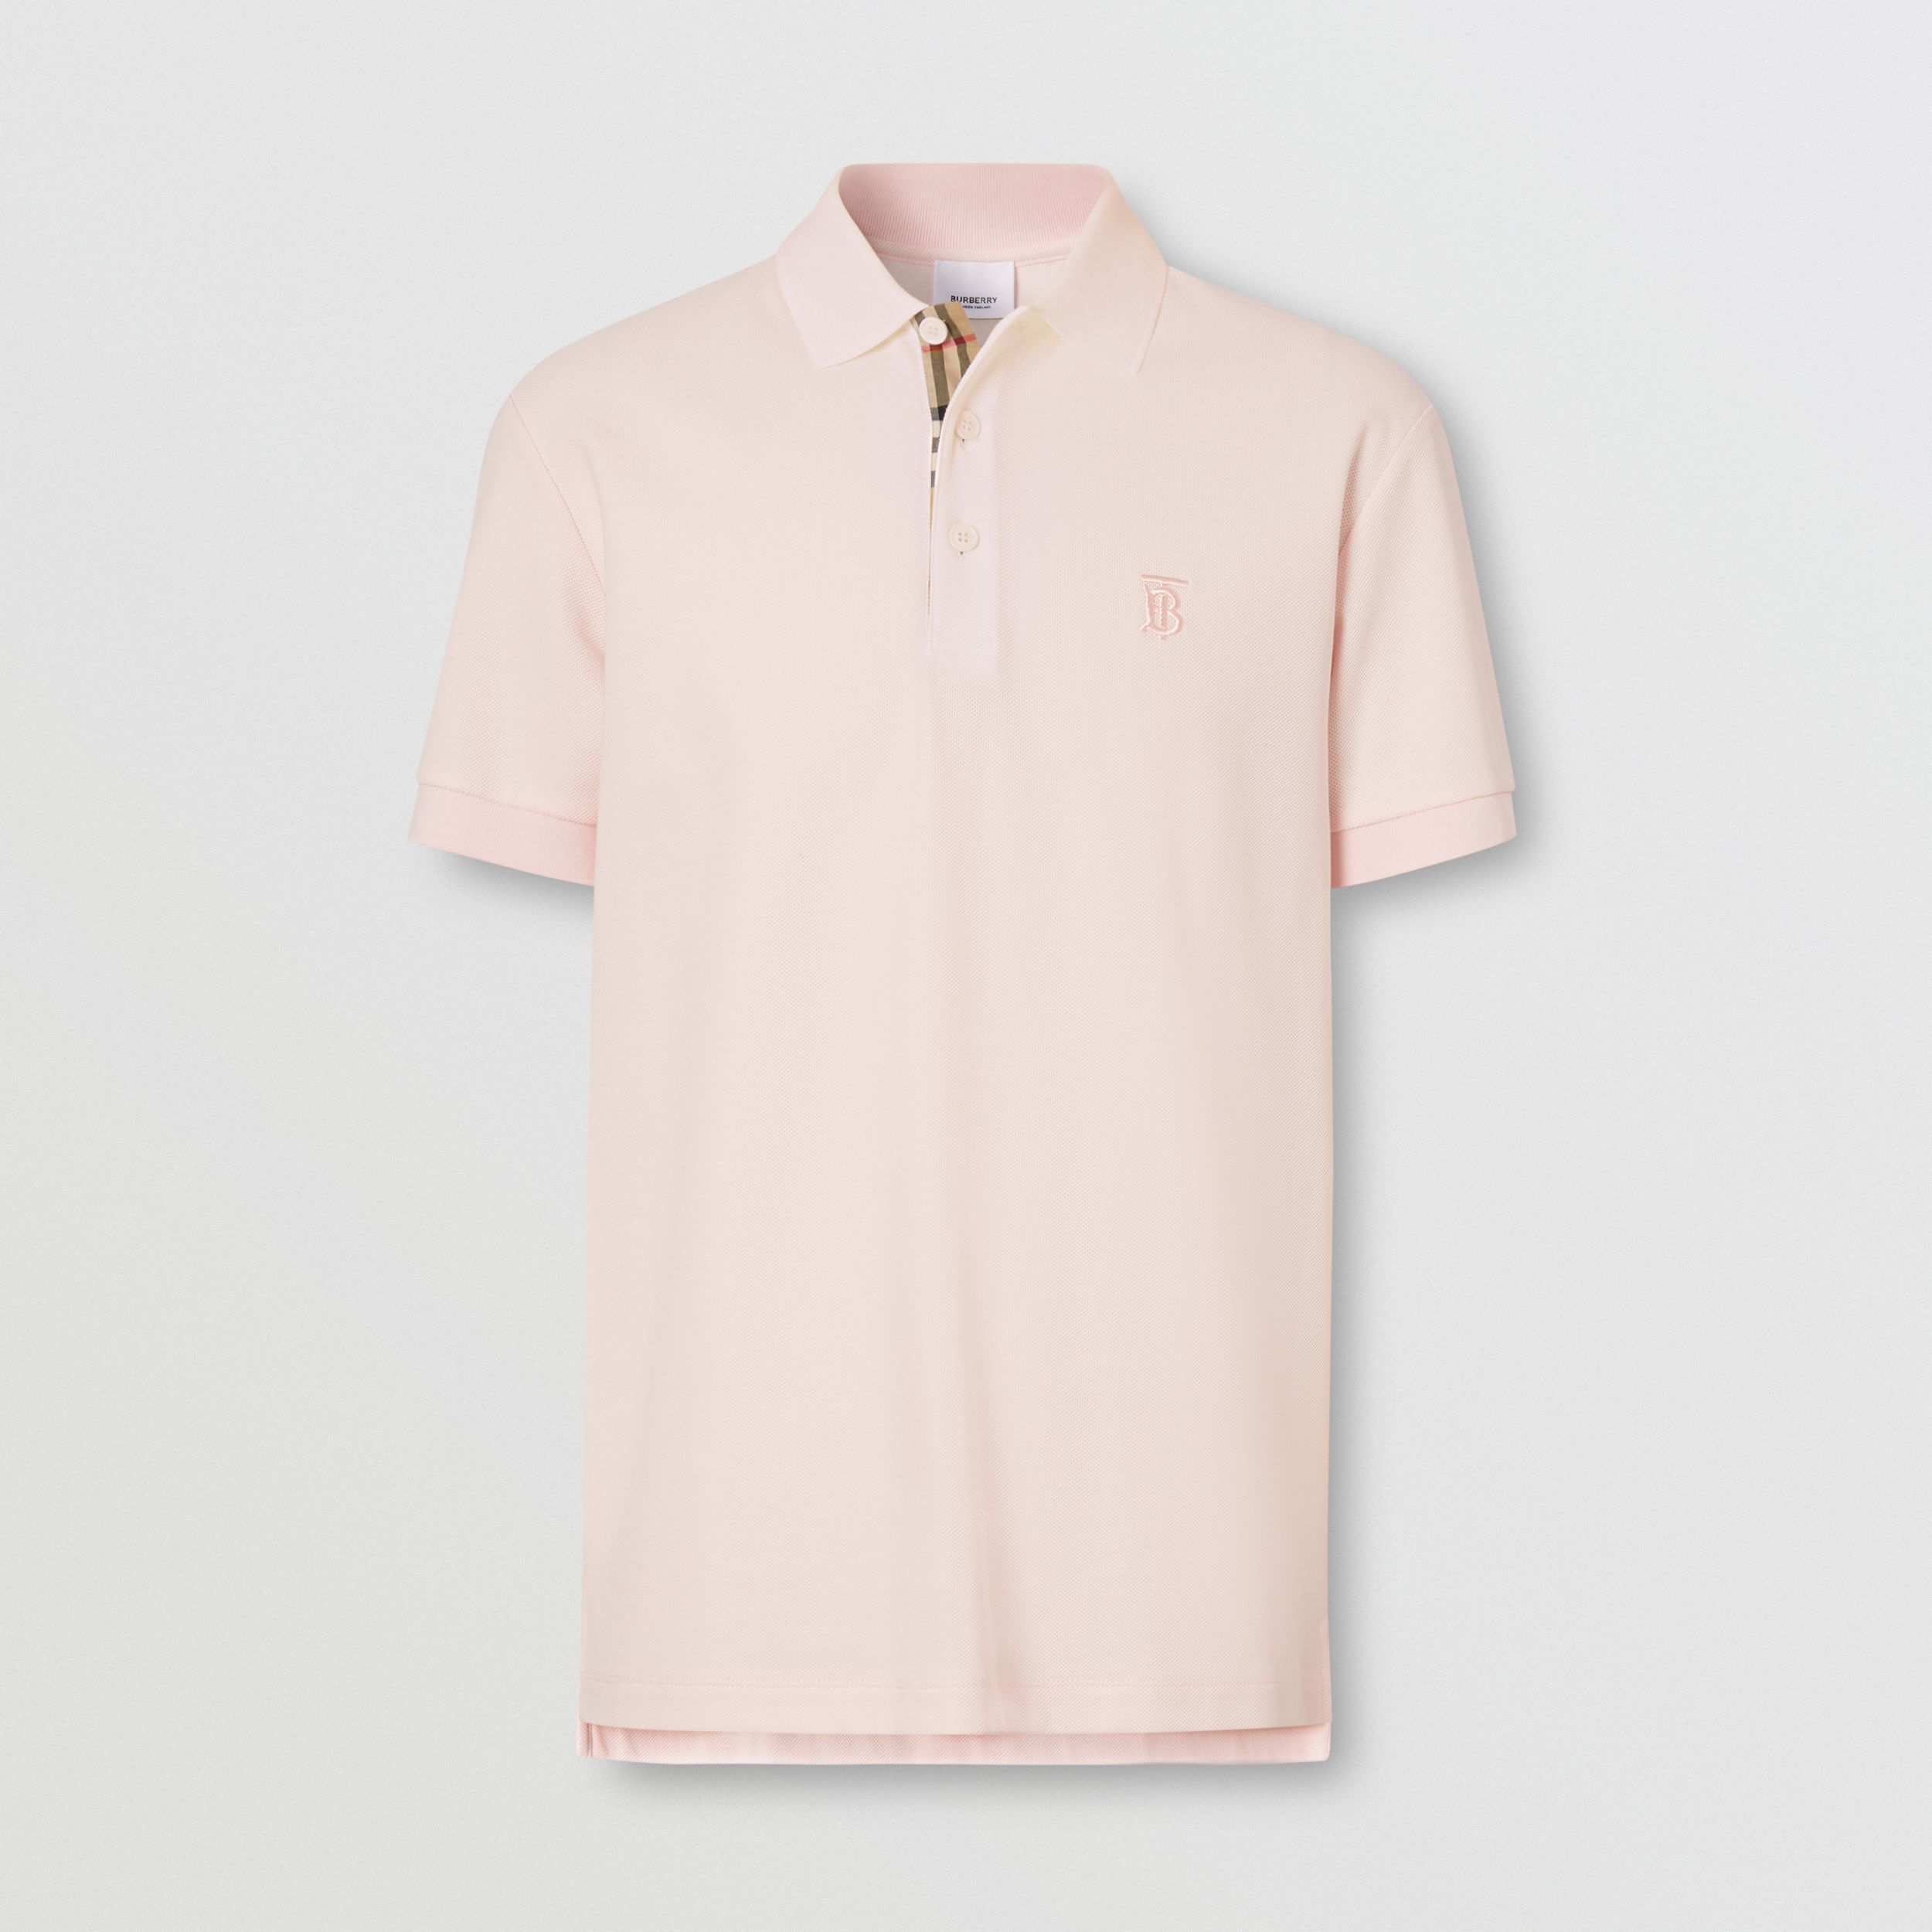 Monogram Motif Cotton Piqué Polo Shirt in Alabaster Pink - Men | Burberry - 4